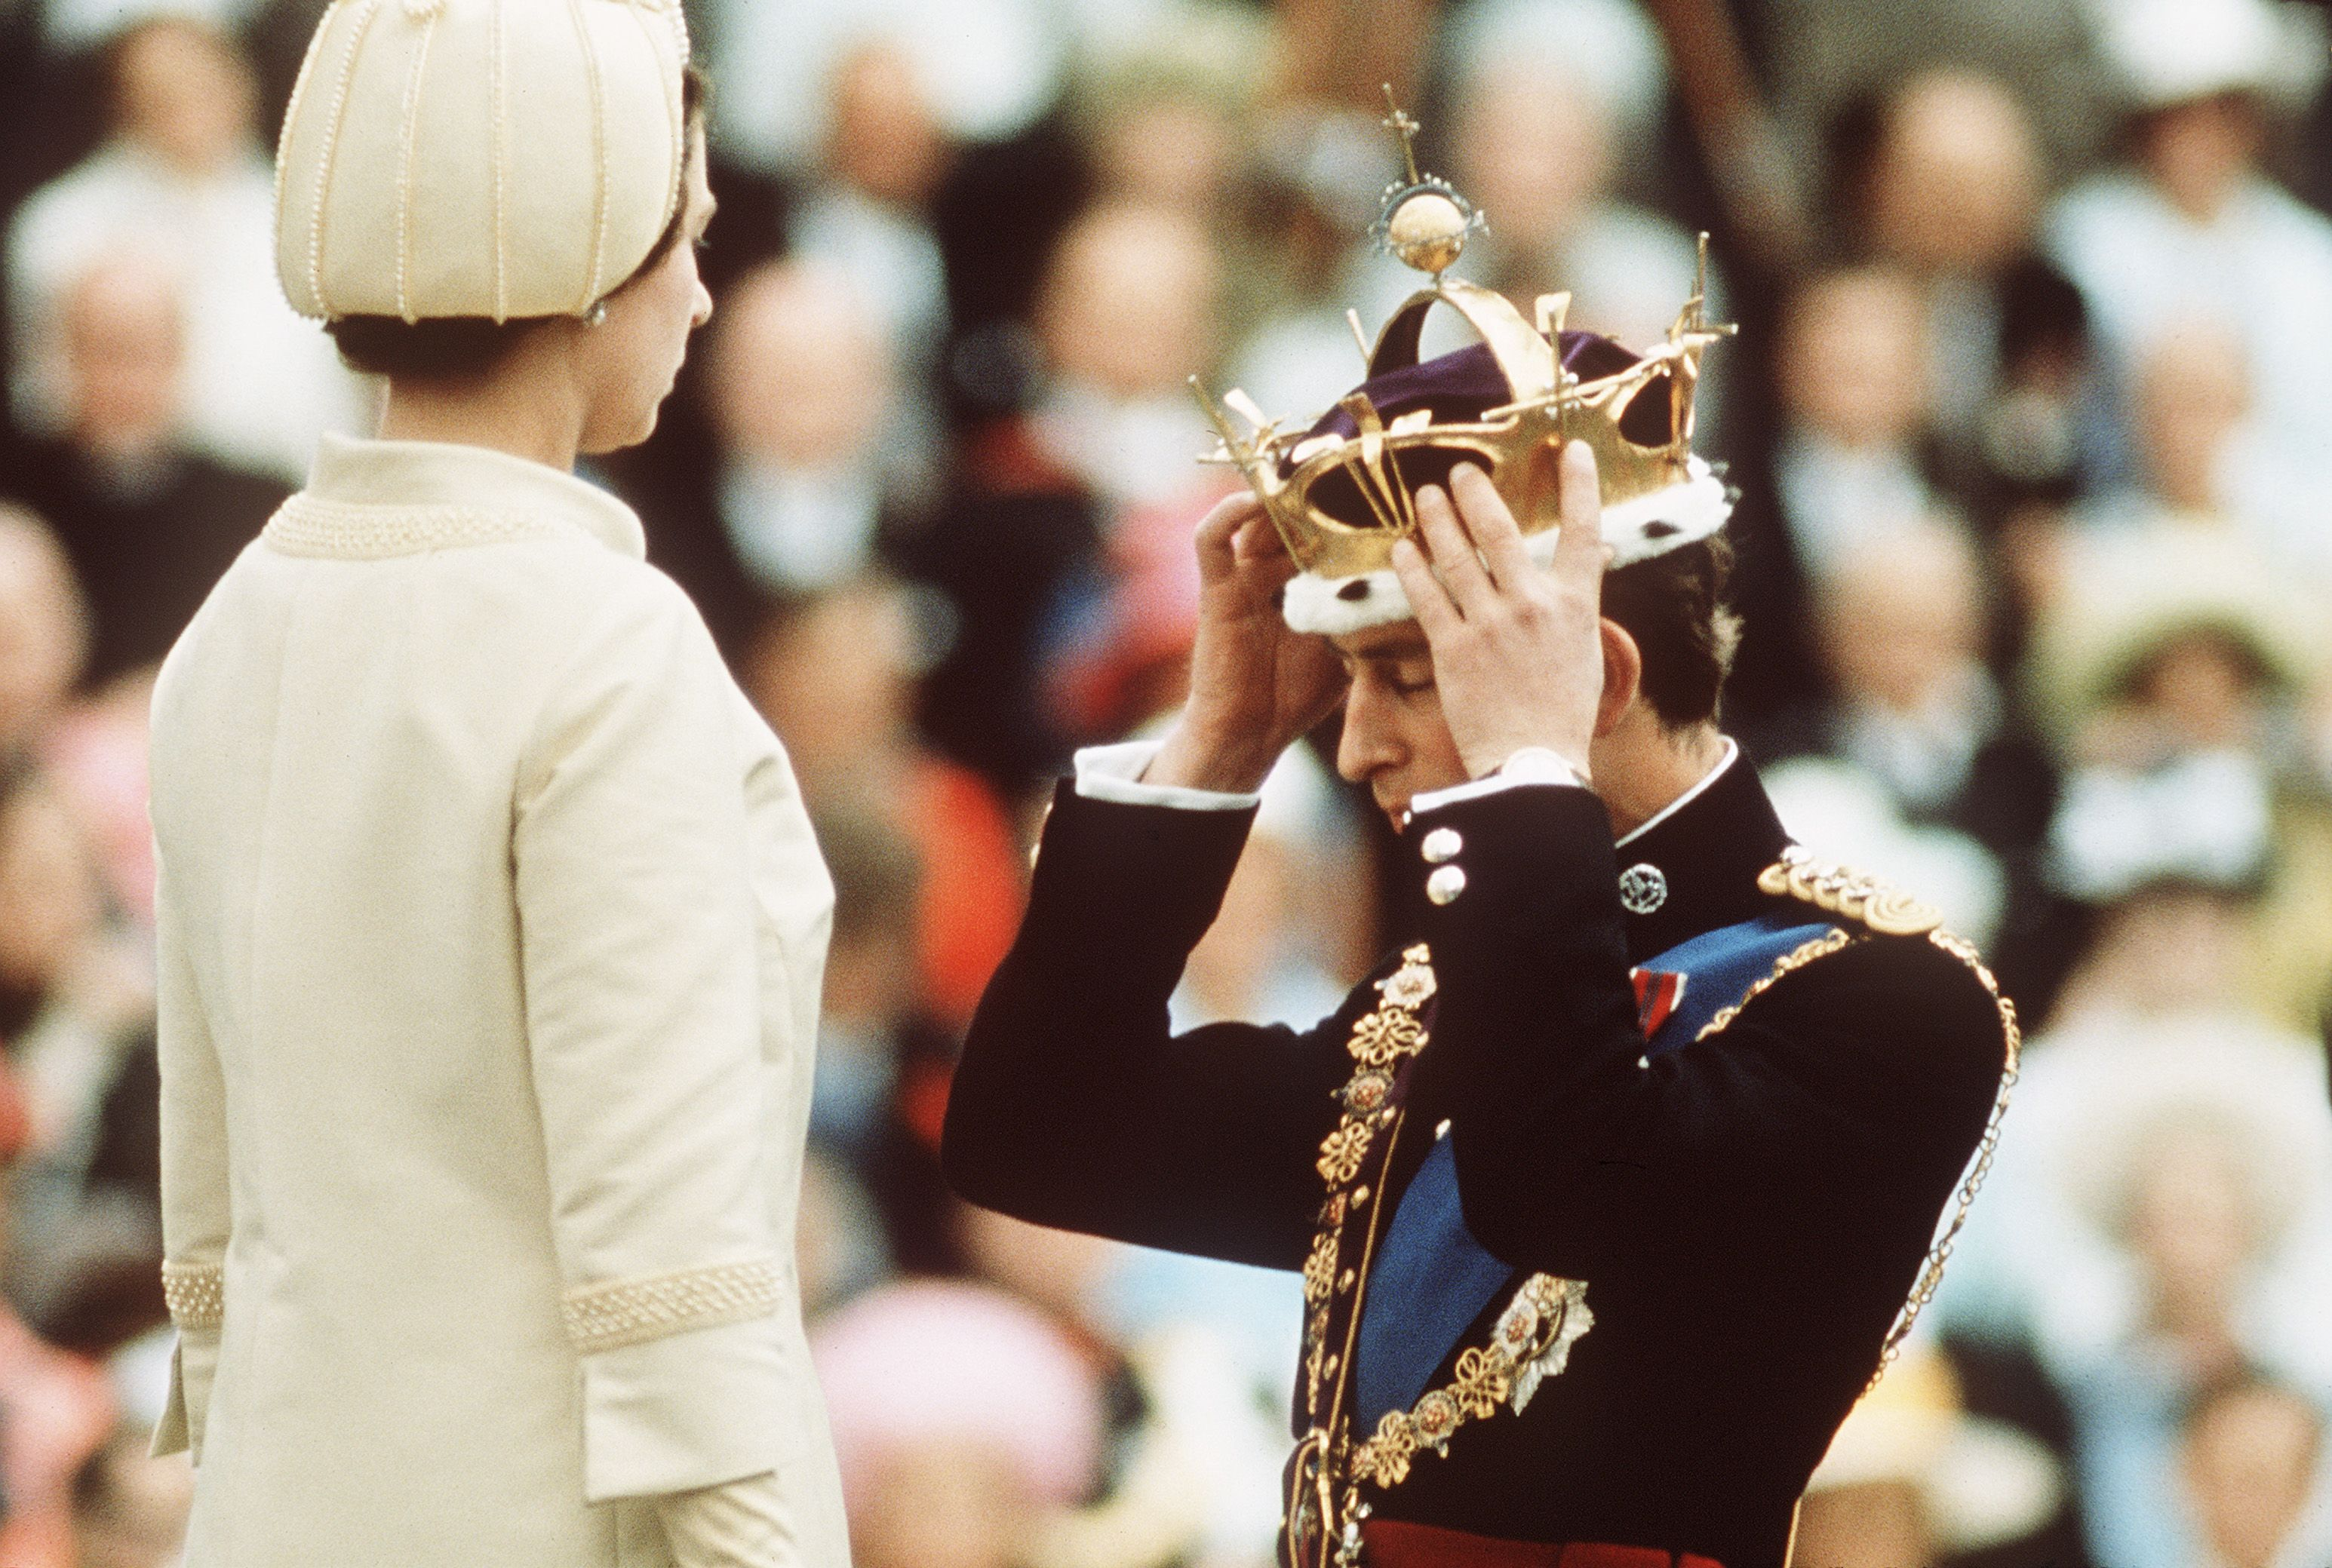 True Story of Prince Charles's Investiture as the Prince of Wales ...